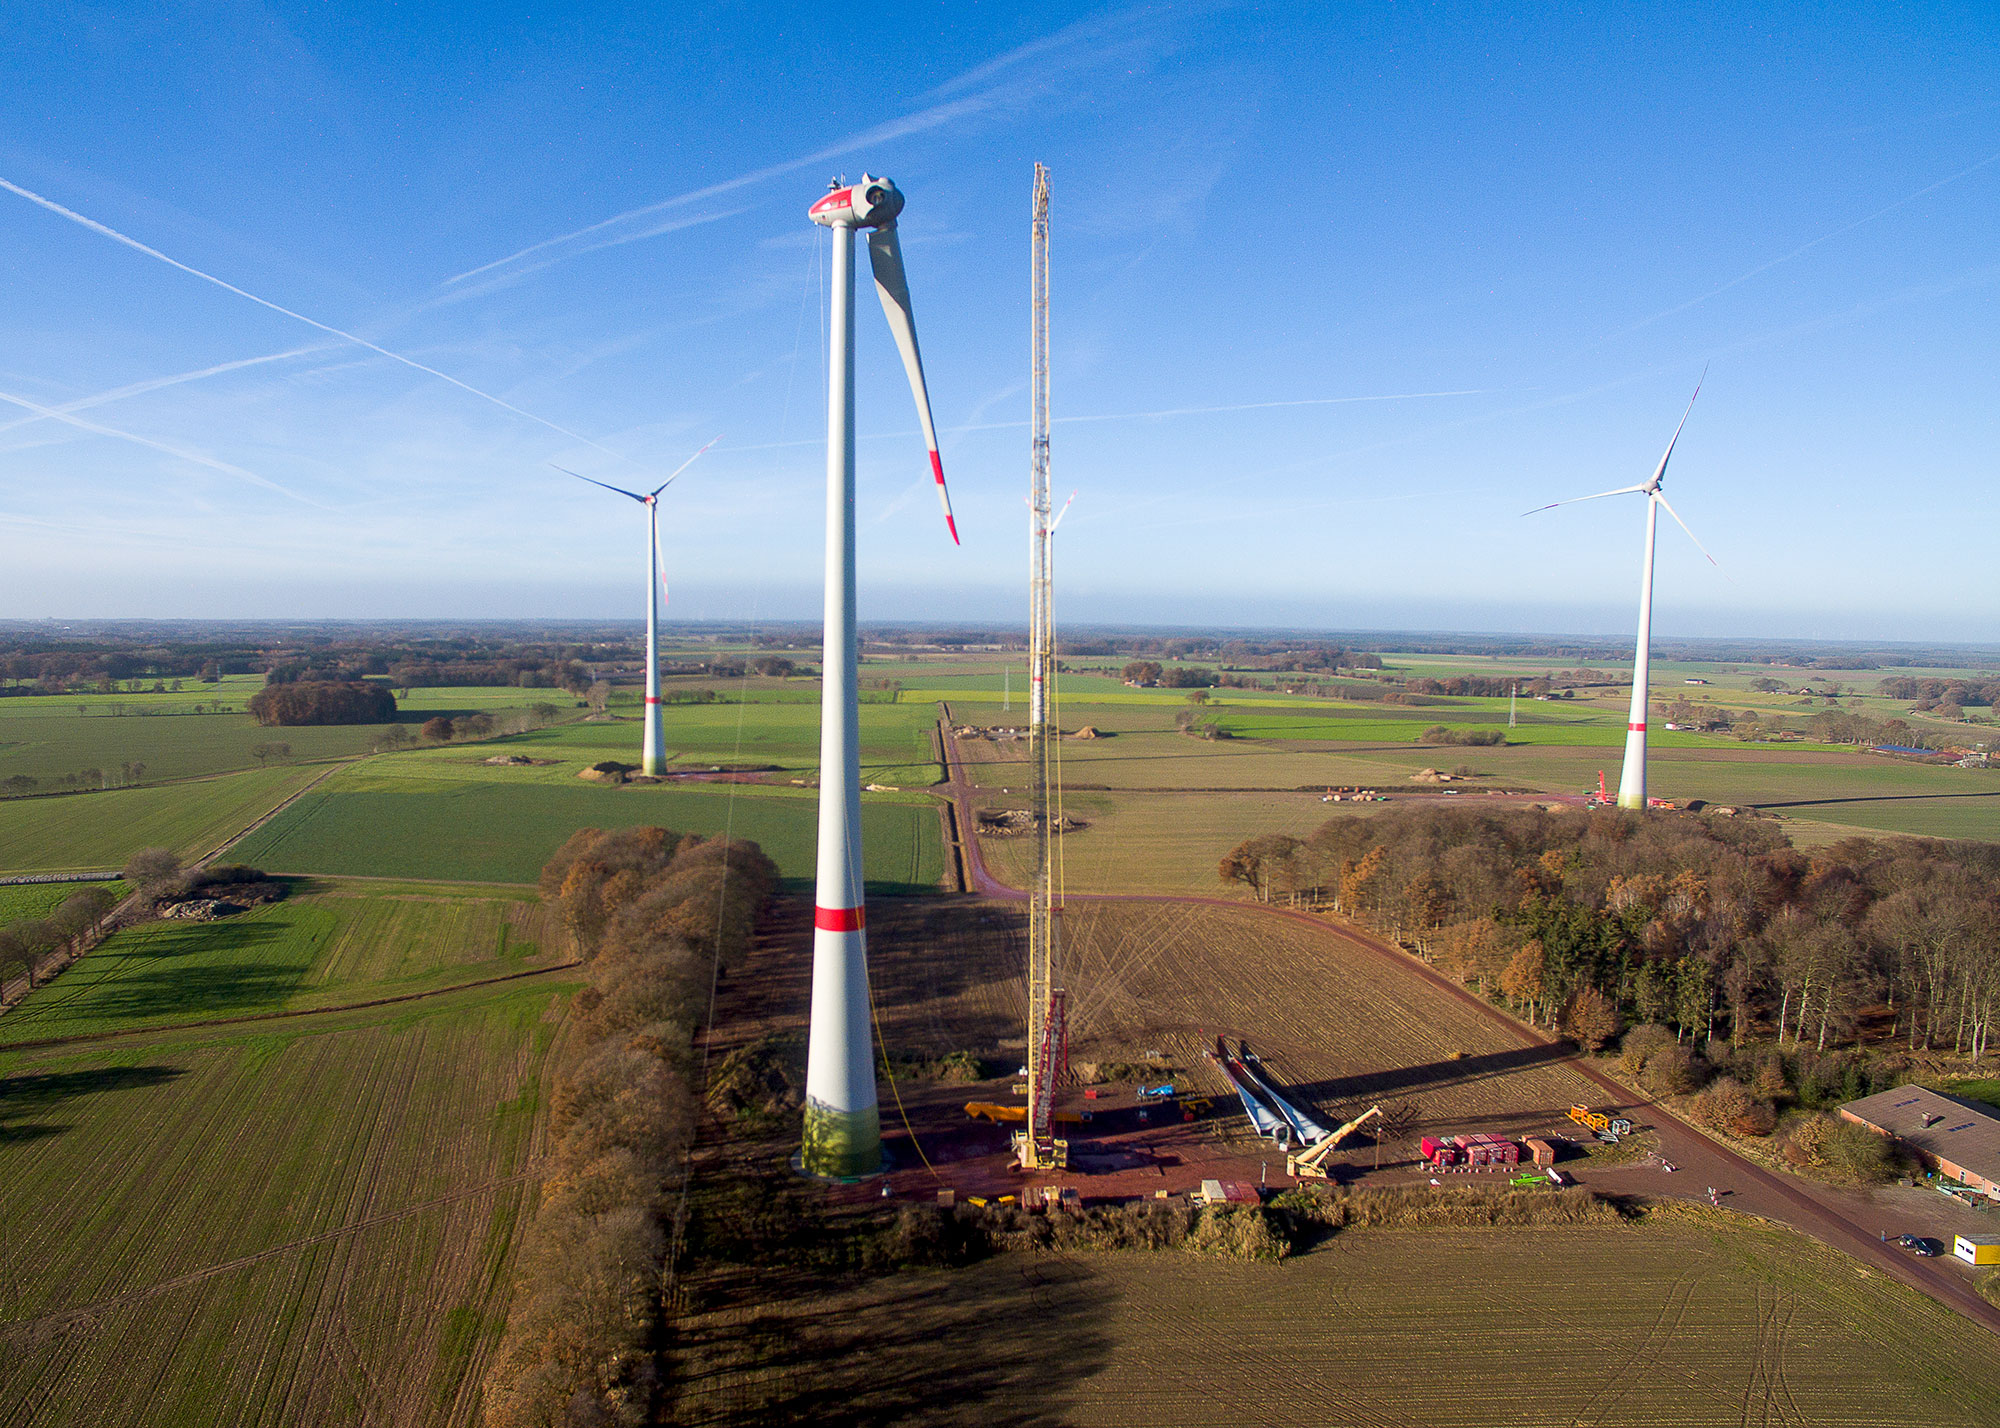 Windpark Düngstrup